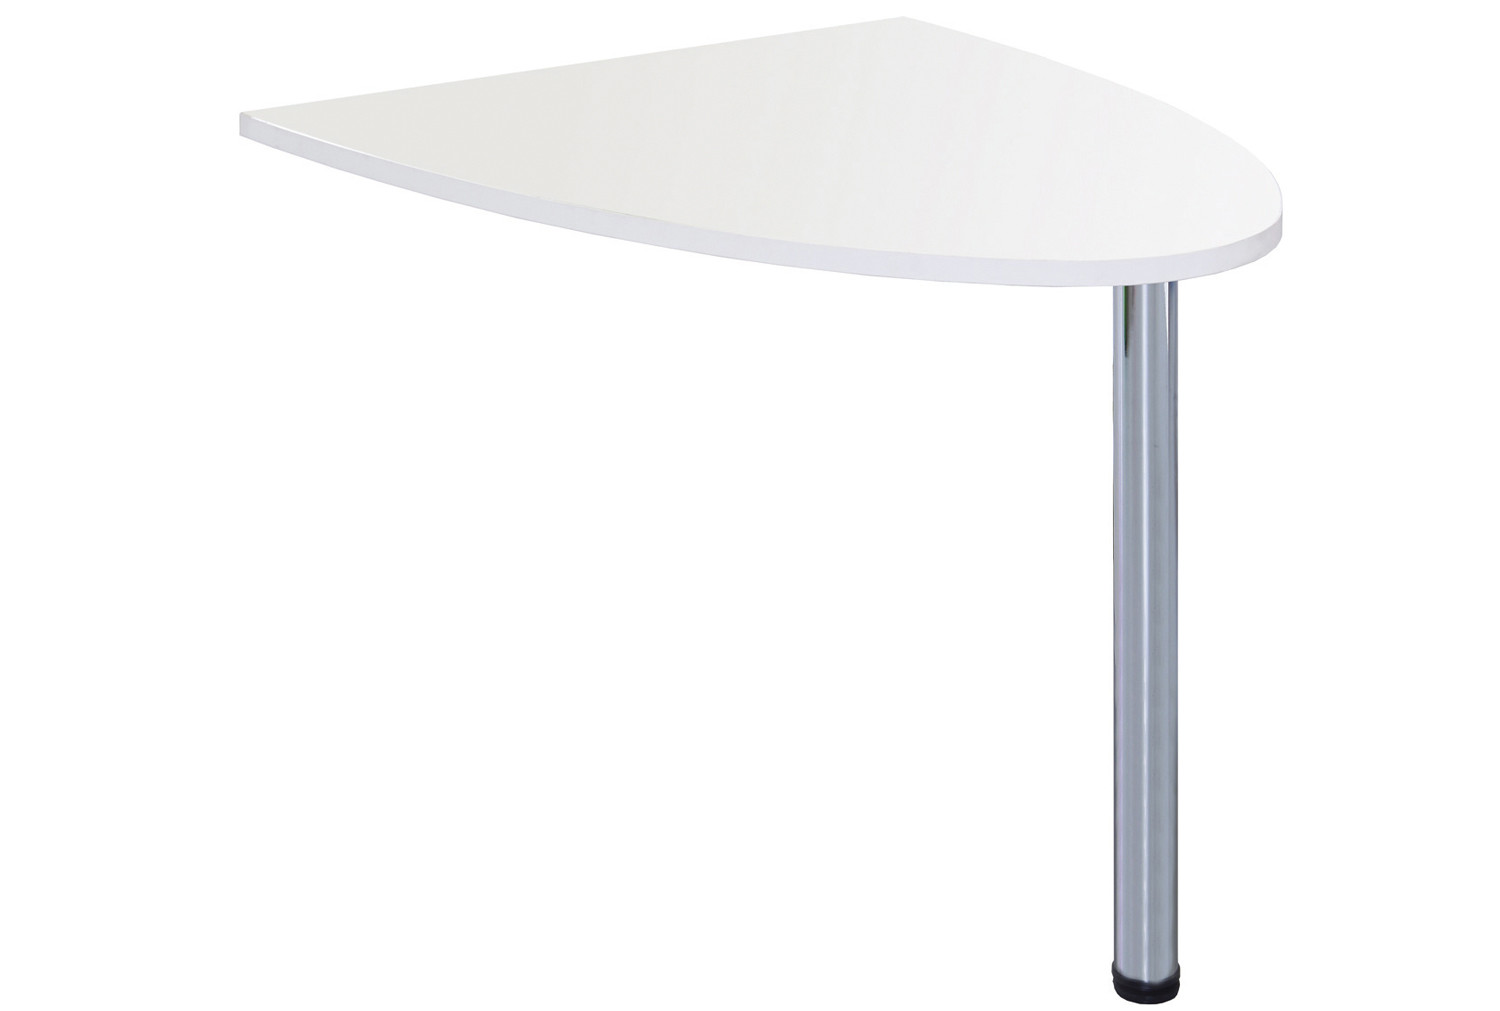 Salute Reception Extension Table